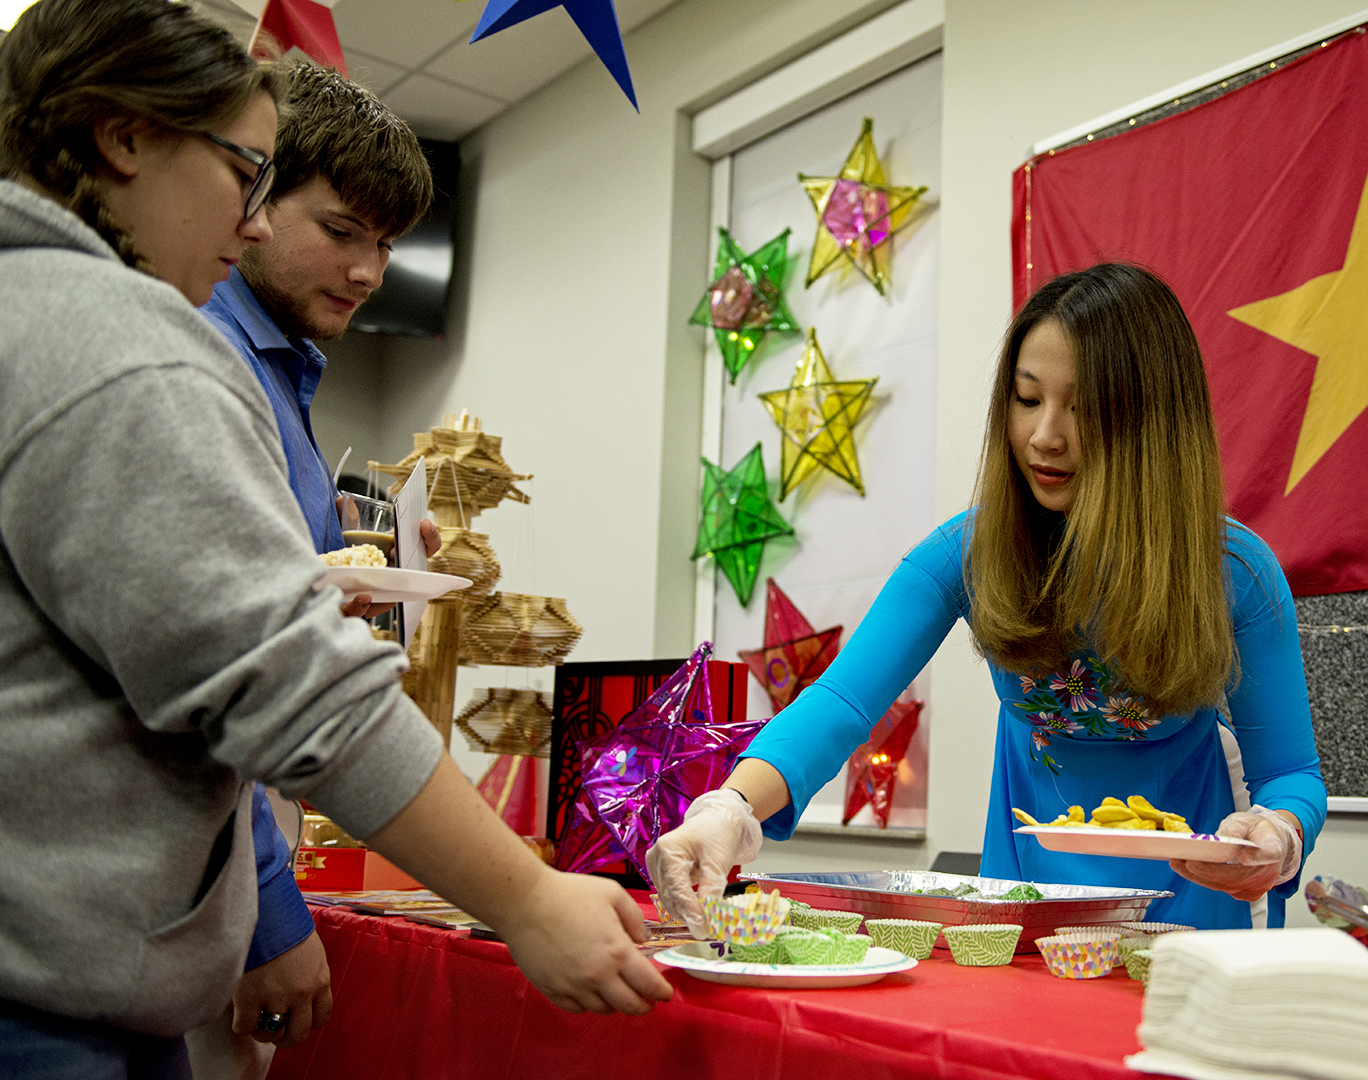 Nga Nguyen, an Alumni of Western Kentucky University, helps hand out traditional Vietnamese snacks at the mid-autumn festival on Friday, October 20. The event was sponsored by the Vietnamese, Chinese, and Korean student organizations on WKU's campus. The festival, also referred to as the moon festival, gave students and community members the opportunity to experience and learn about three different Asian cultures.